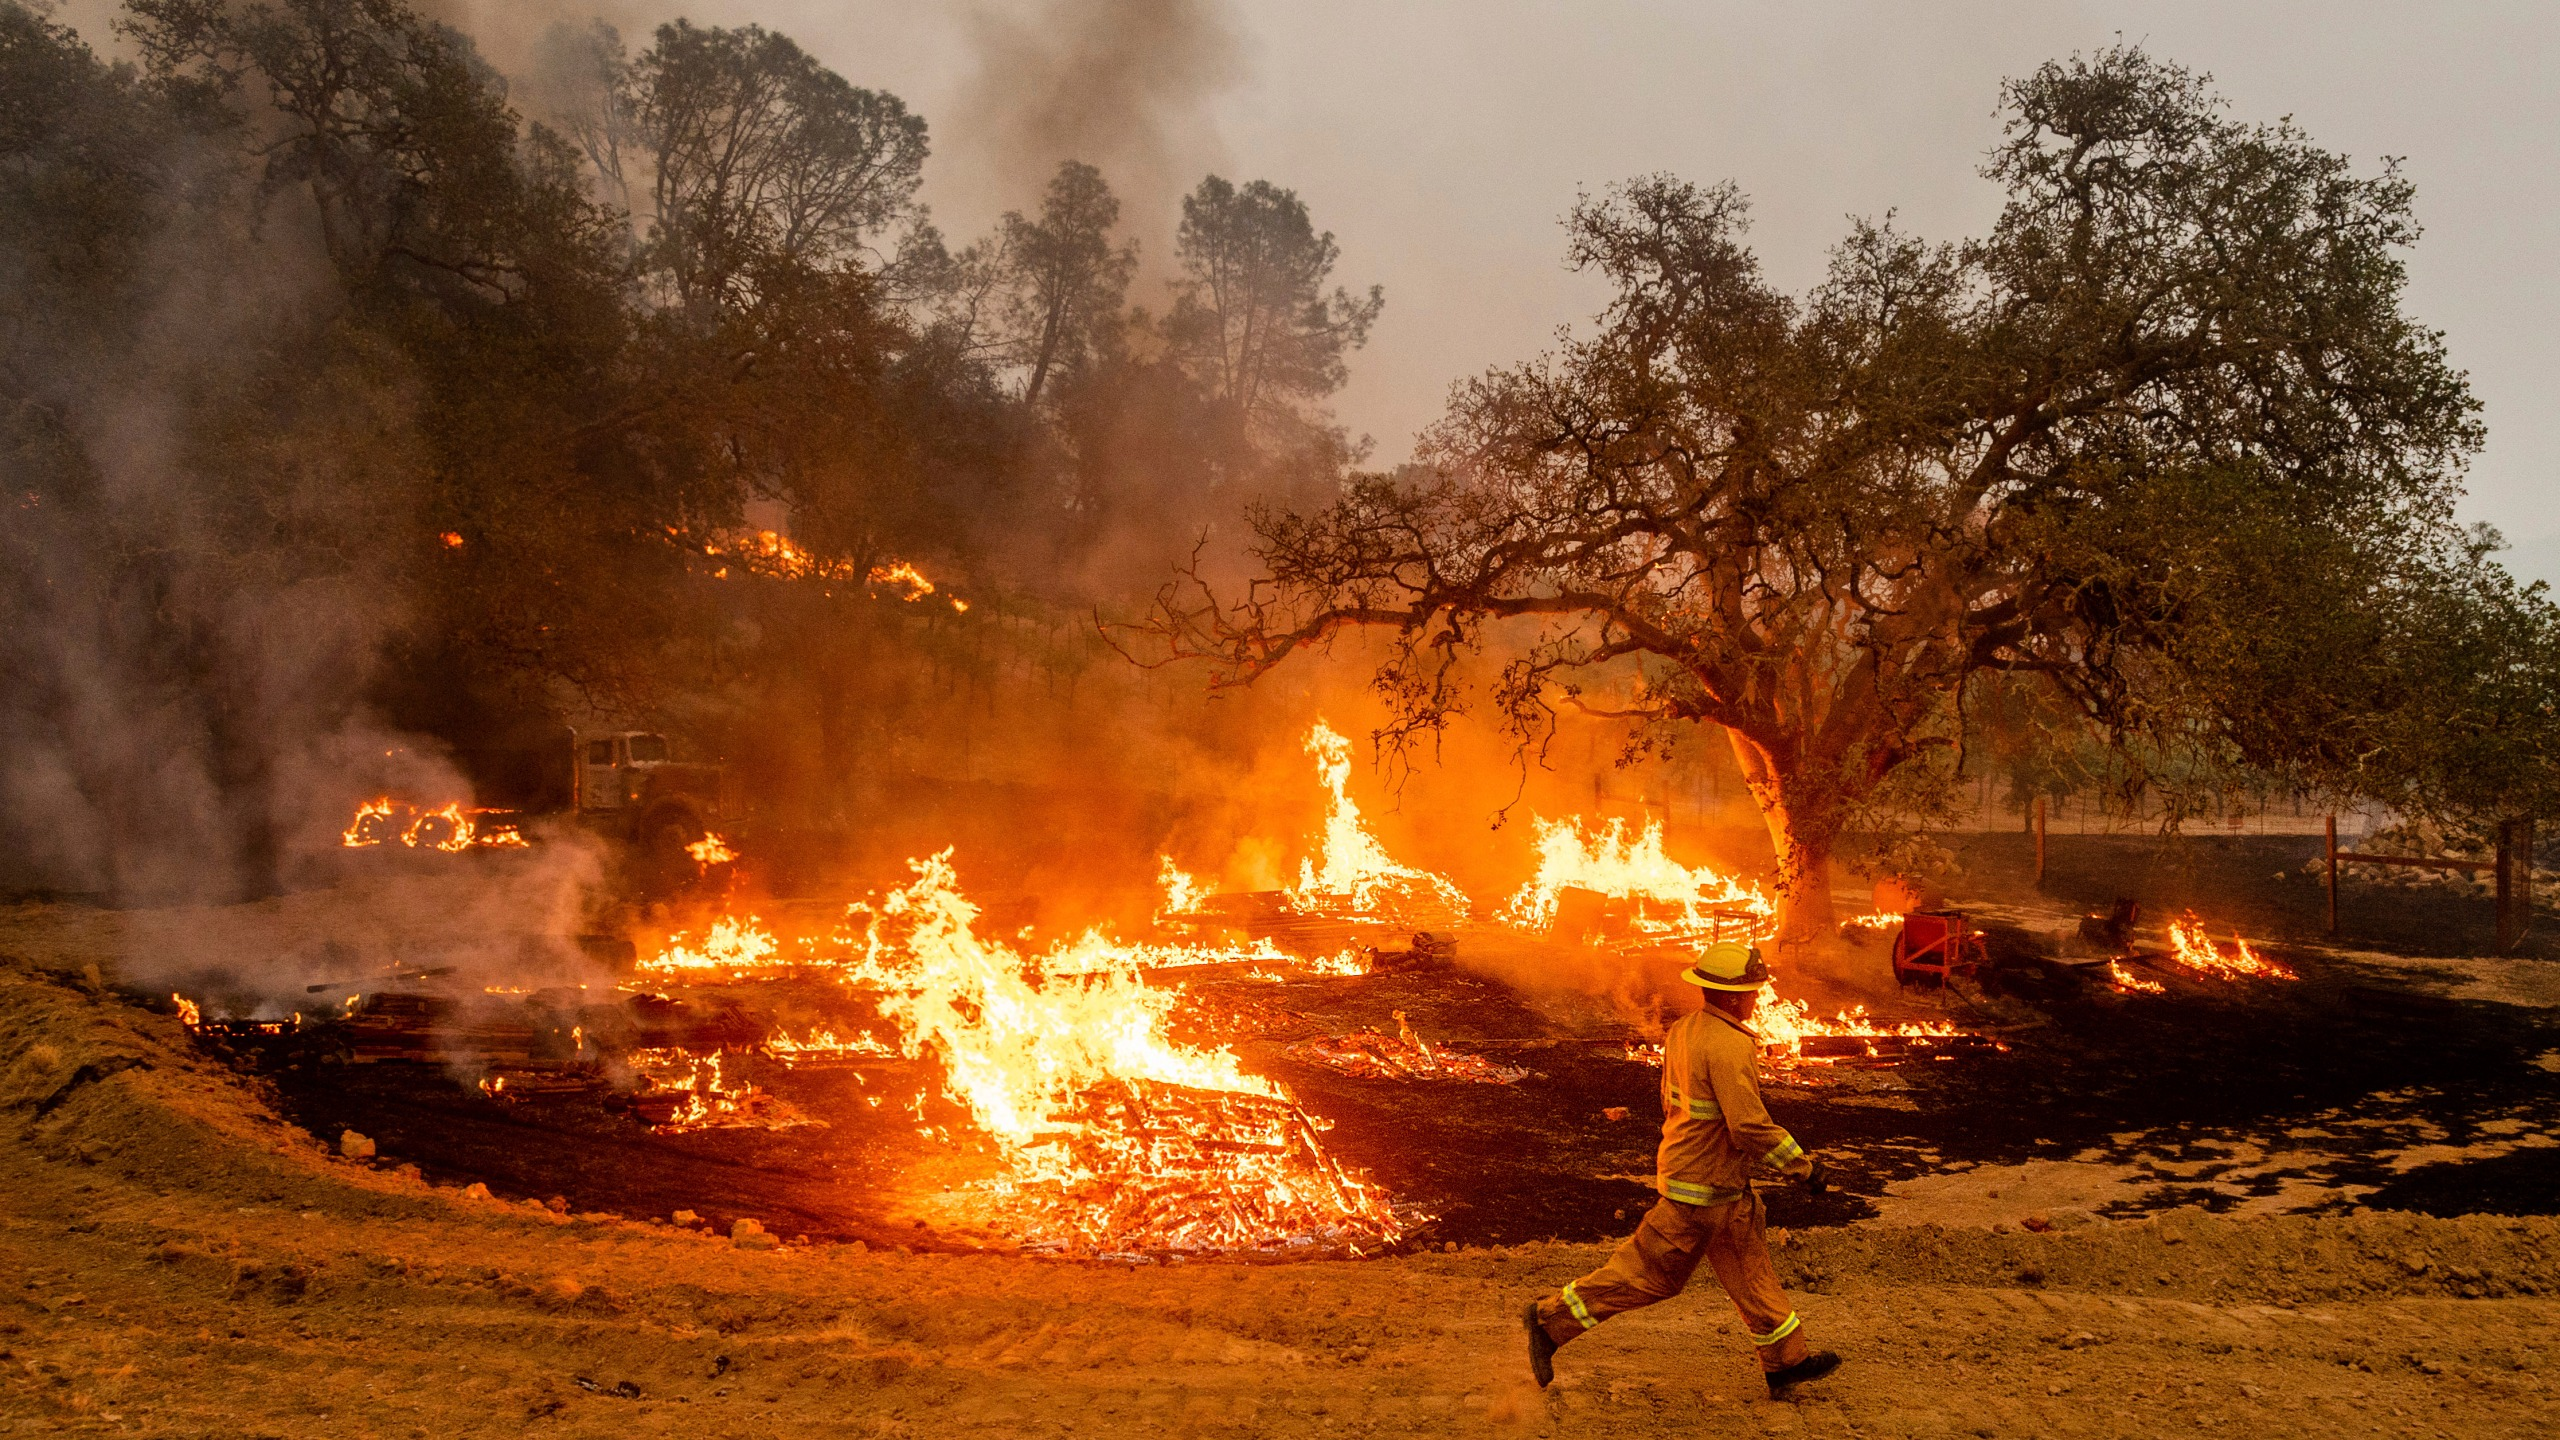 A firefighter runs past flames while battling the Glass Fire in a Calistoga vineyard on Oct. 1, 2020. (Noah Berger / Associated Press)